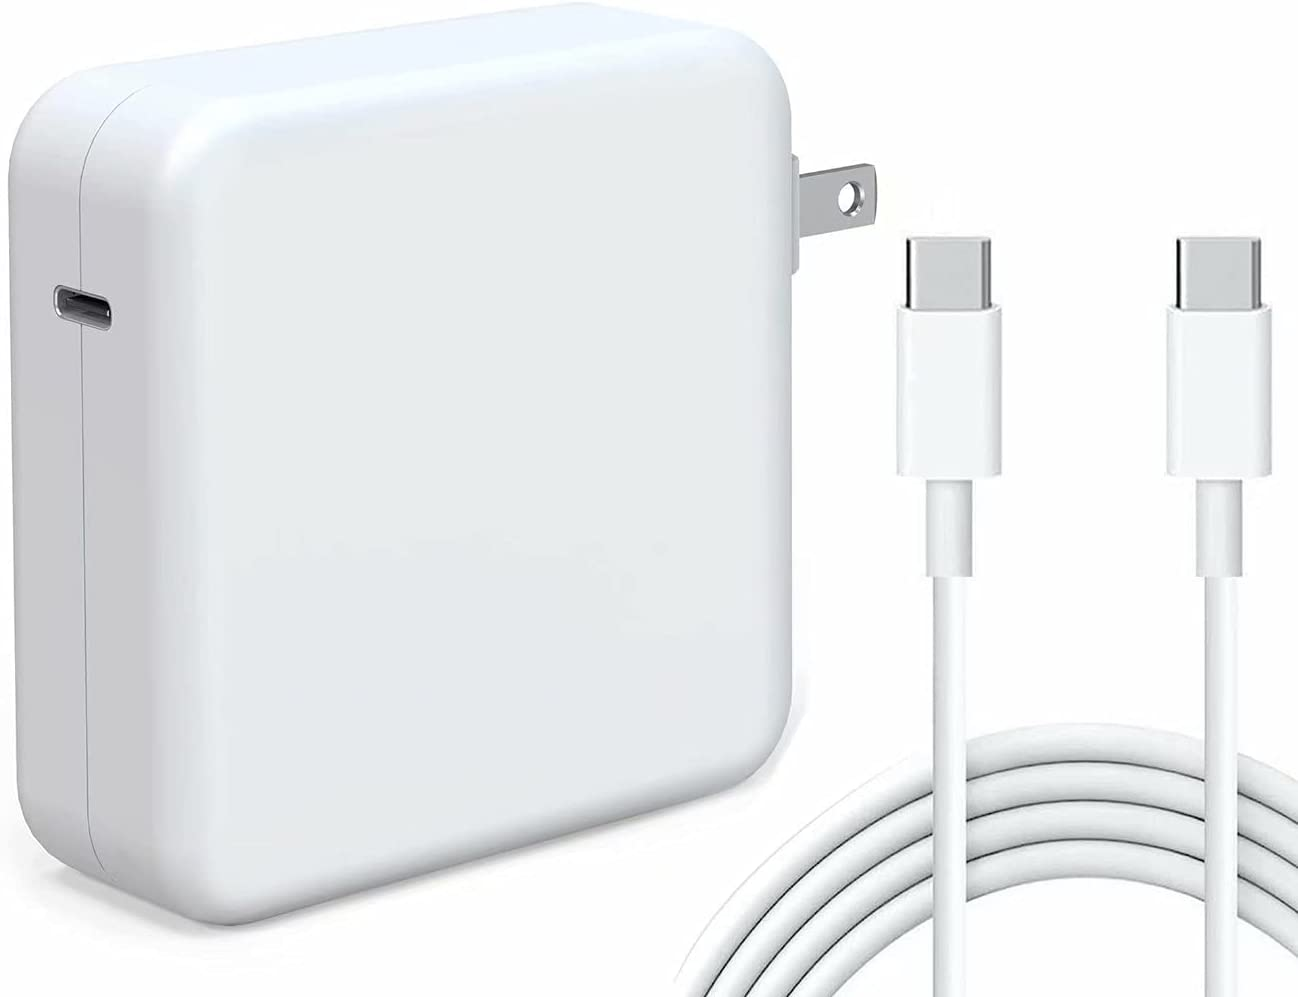 Kiolafy 96W USB C Power Adapter, Compatible with MacBook Pro Charger 13 15 16 inch 2020 2019 2018, Works with USB C 96W 87W 61W PD Power Charger, Included USB-C to USB-C Charge Cable (6.6ft/2m)